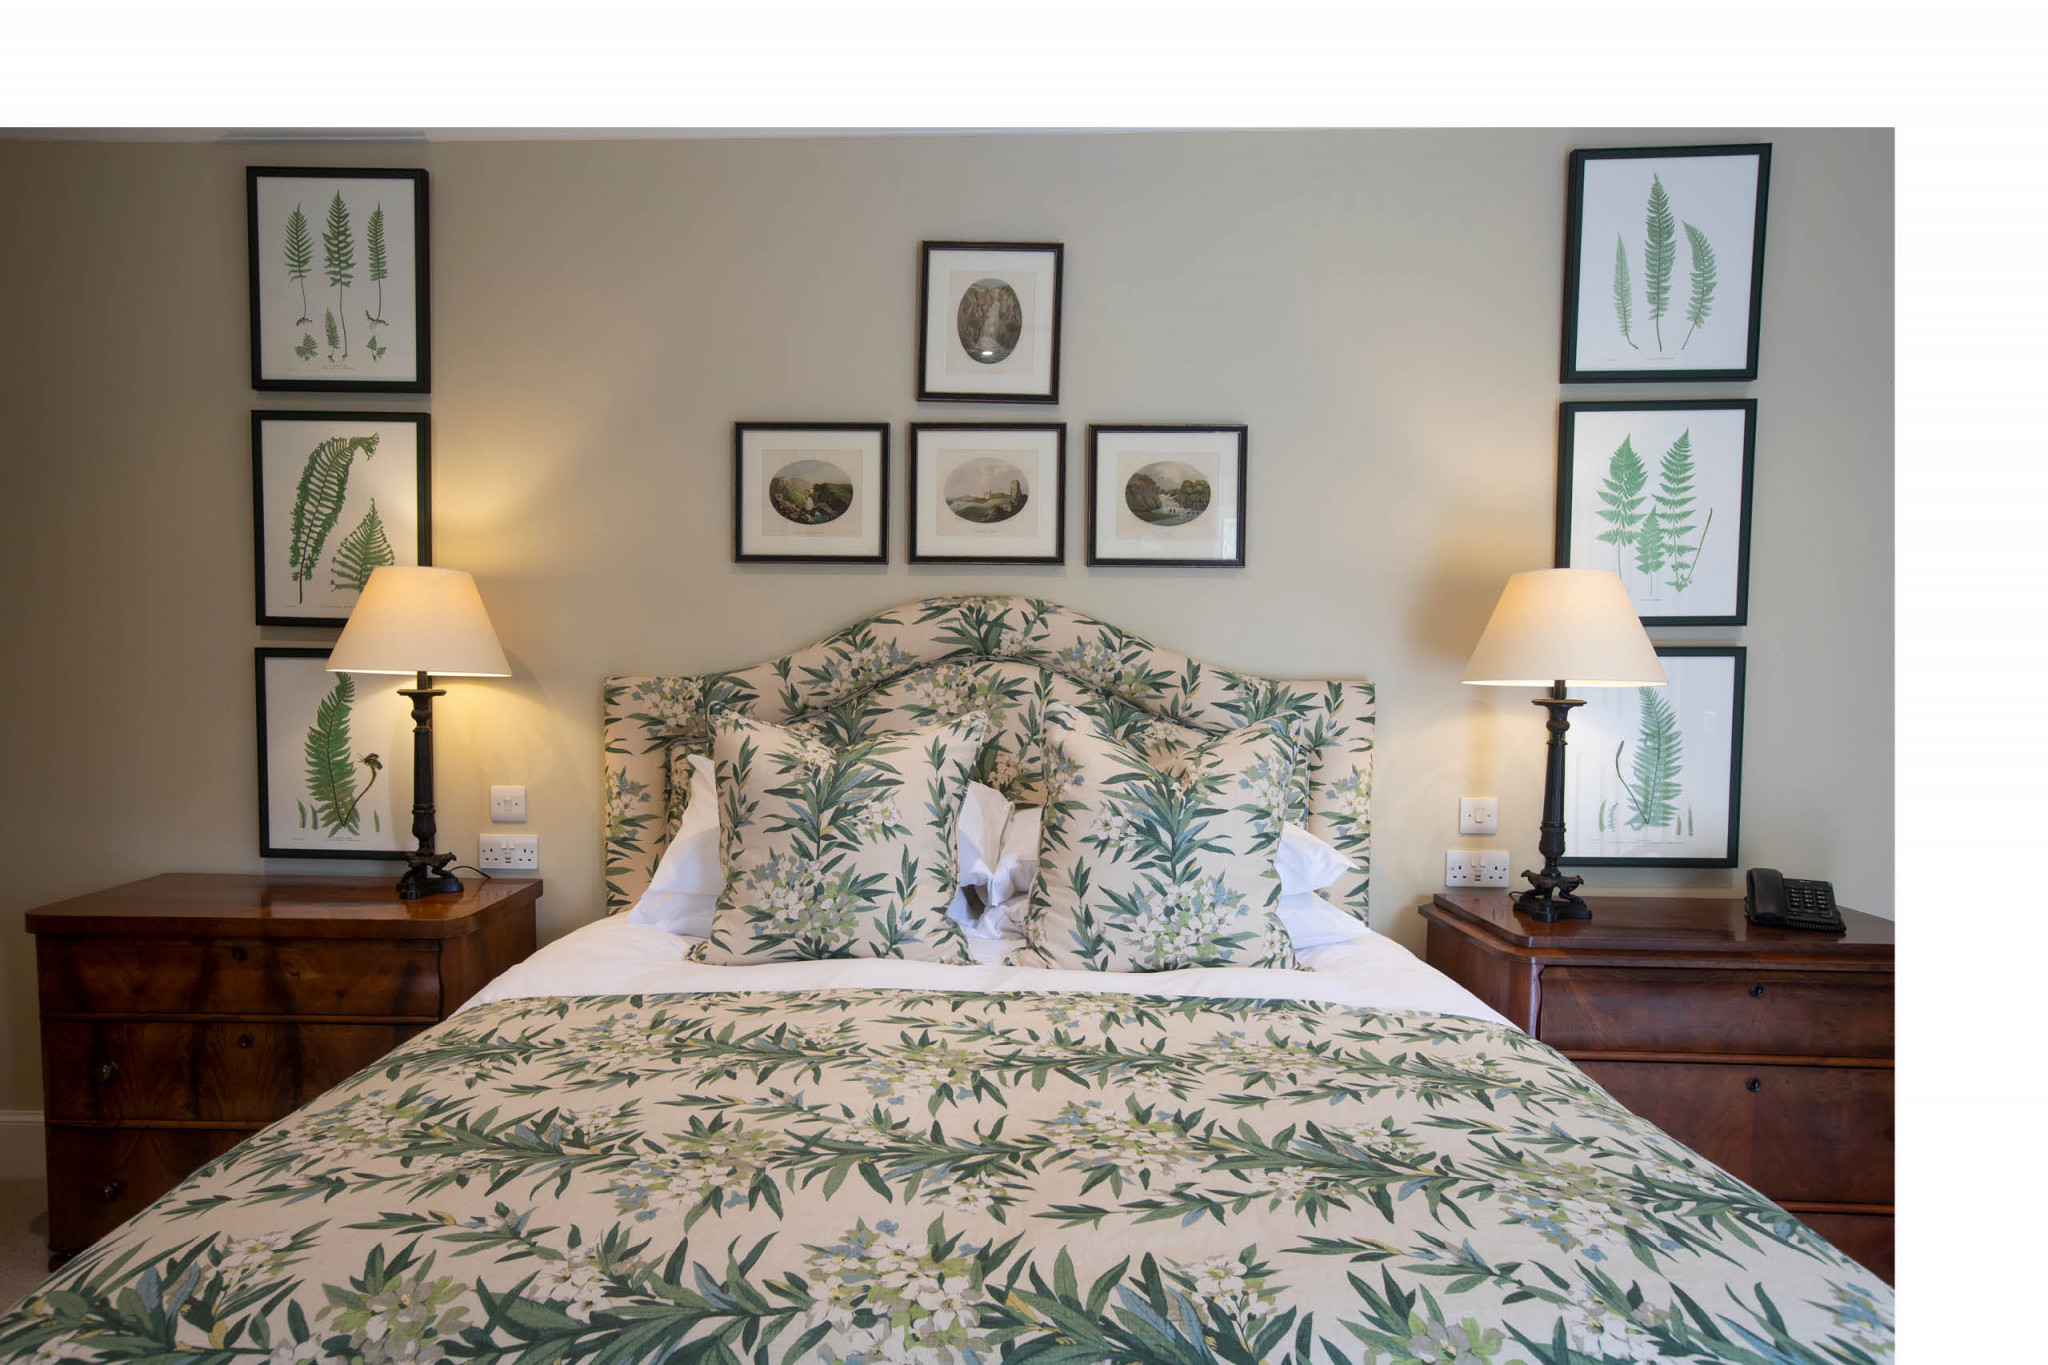 Image of a bedroom with bedding, bed frame and pictures of different leaves